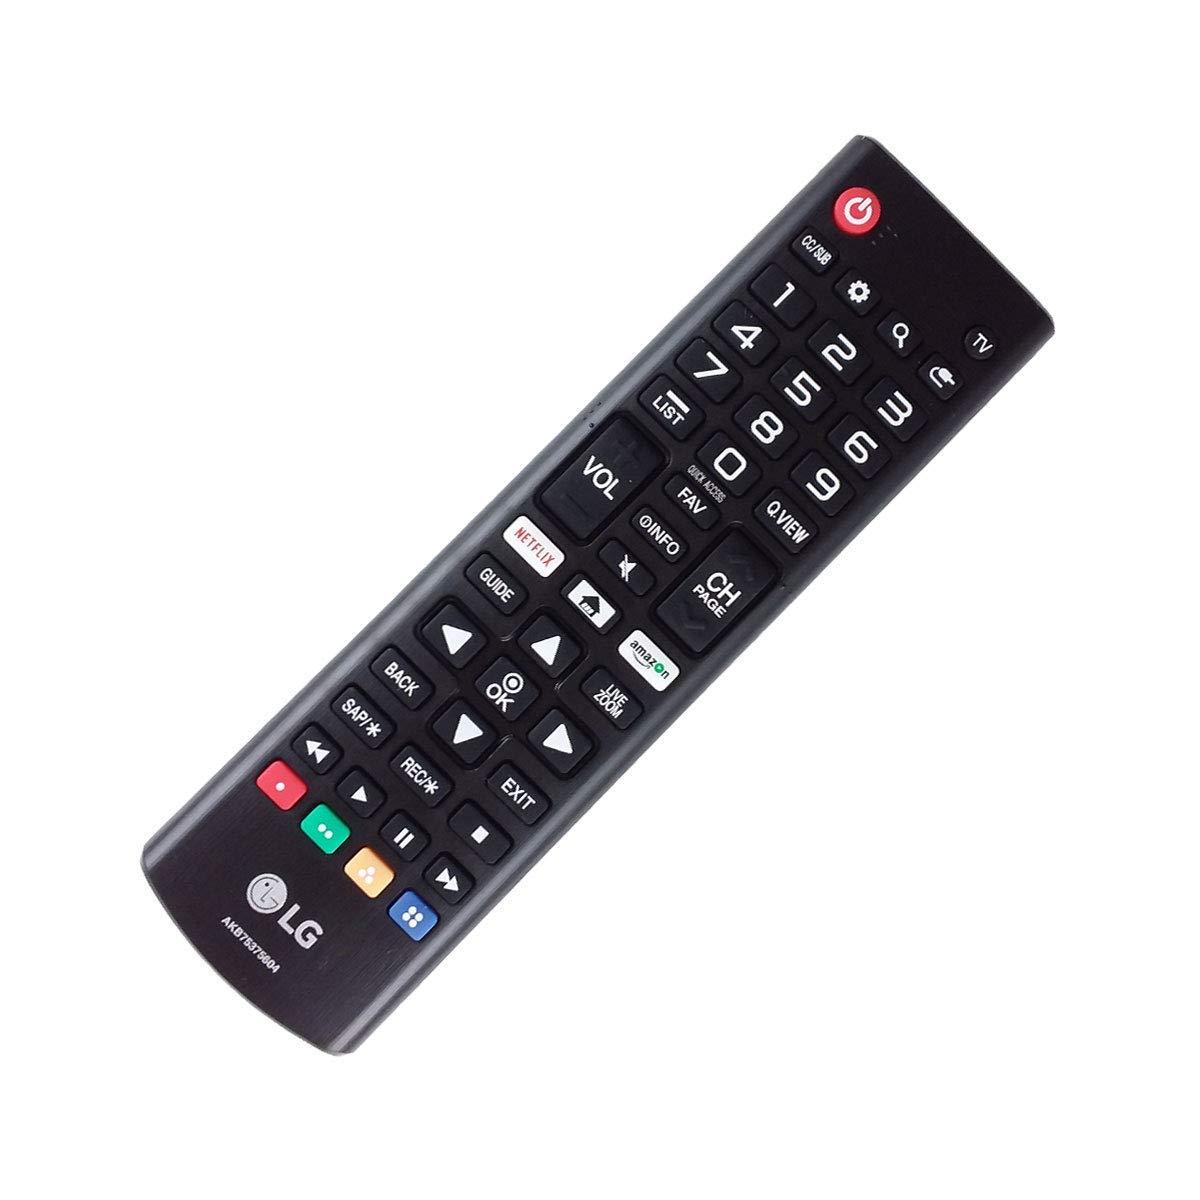 OEM AKB75375604 LG TV Remote Control for/fit 32LK540BPUA 43UK6250PUB with Netflix and Amazon Buttons (Renewed)